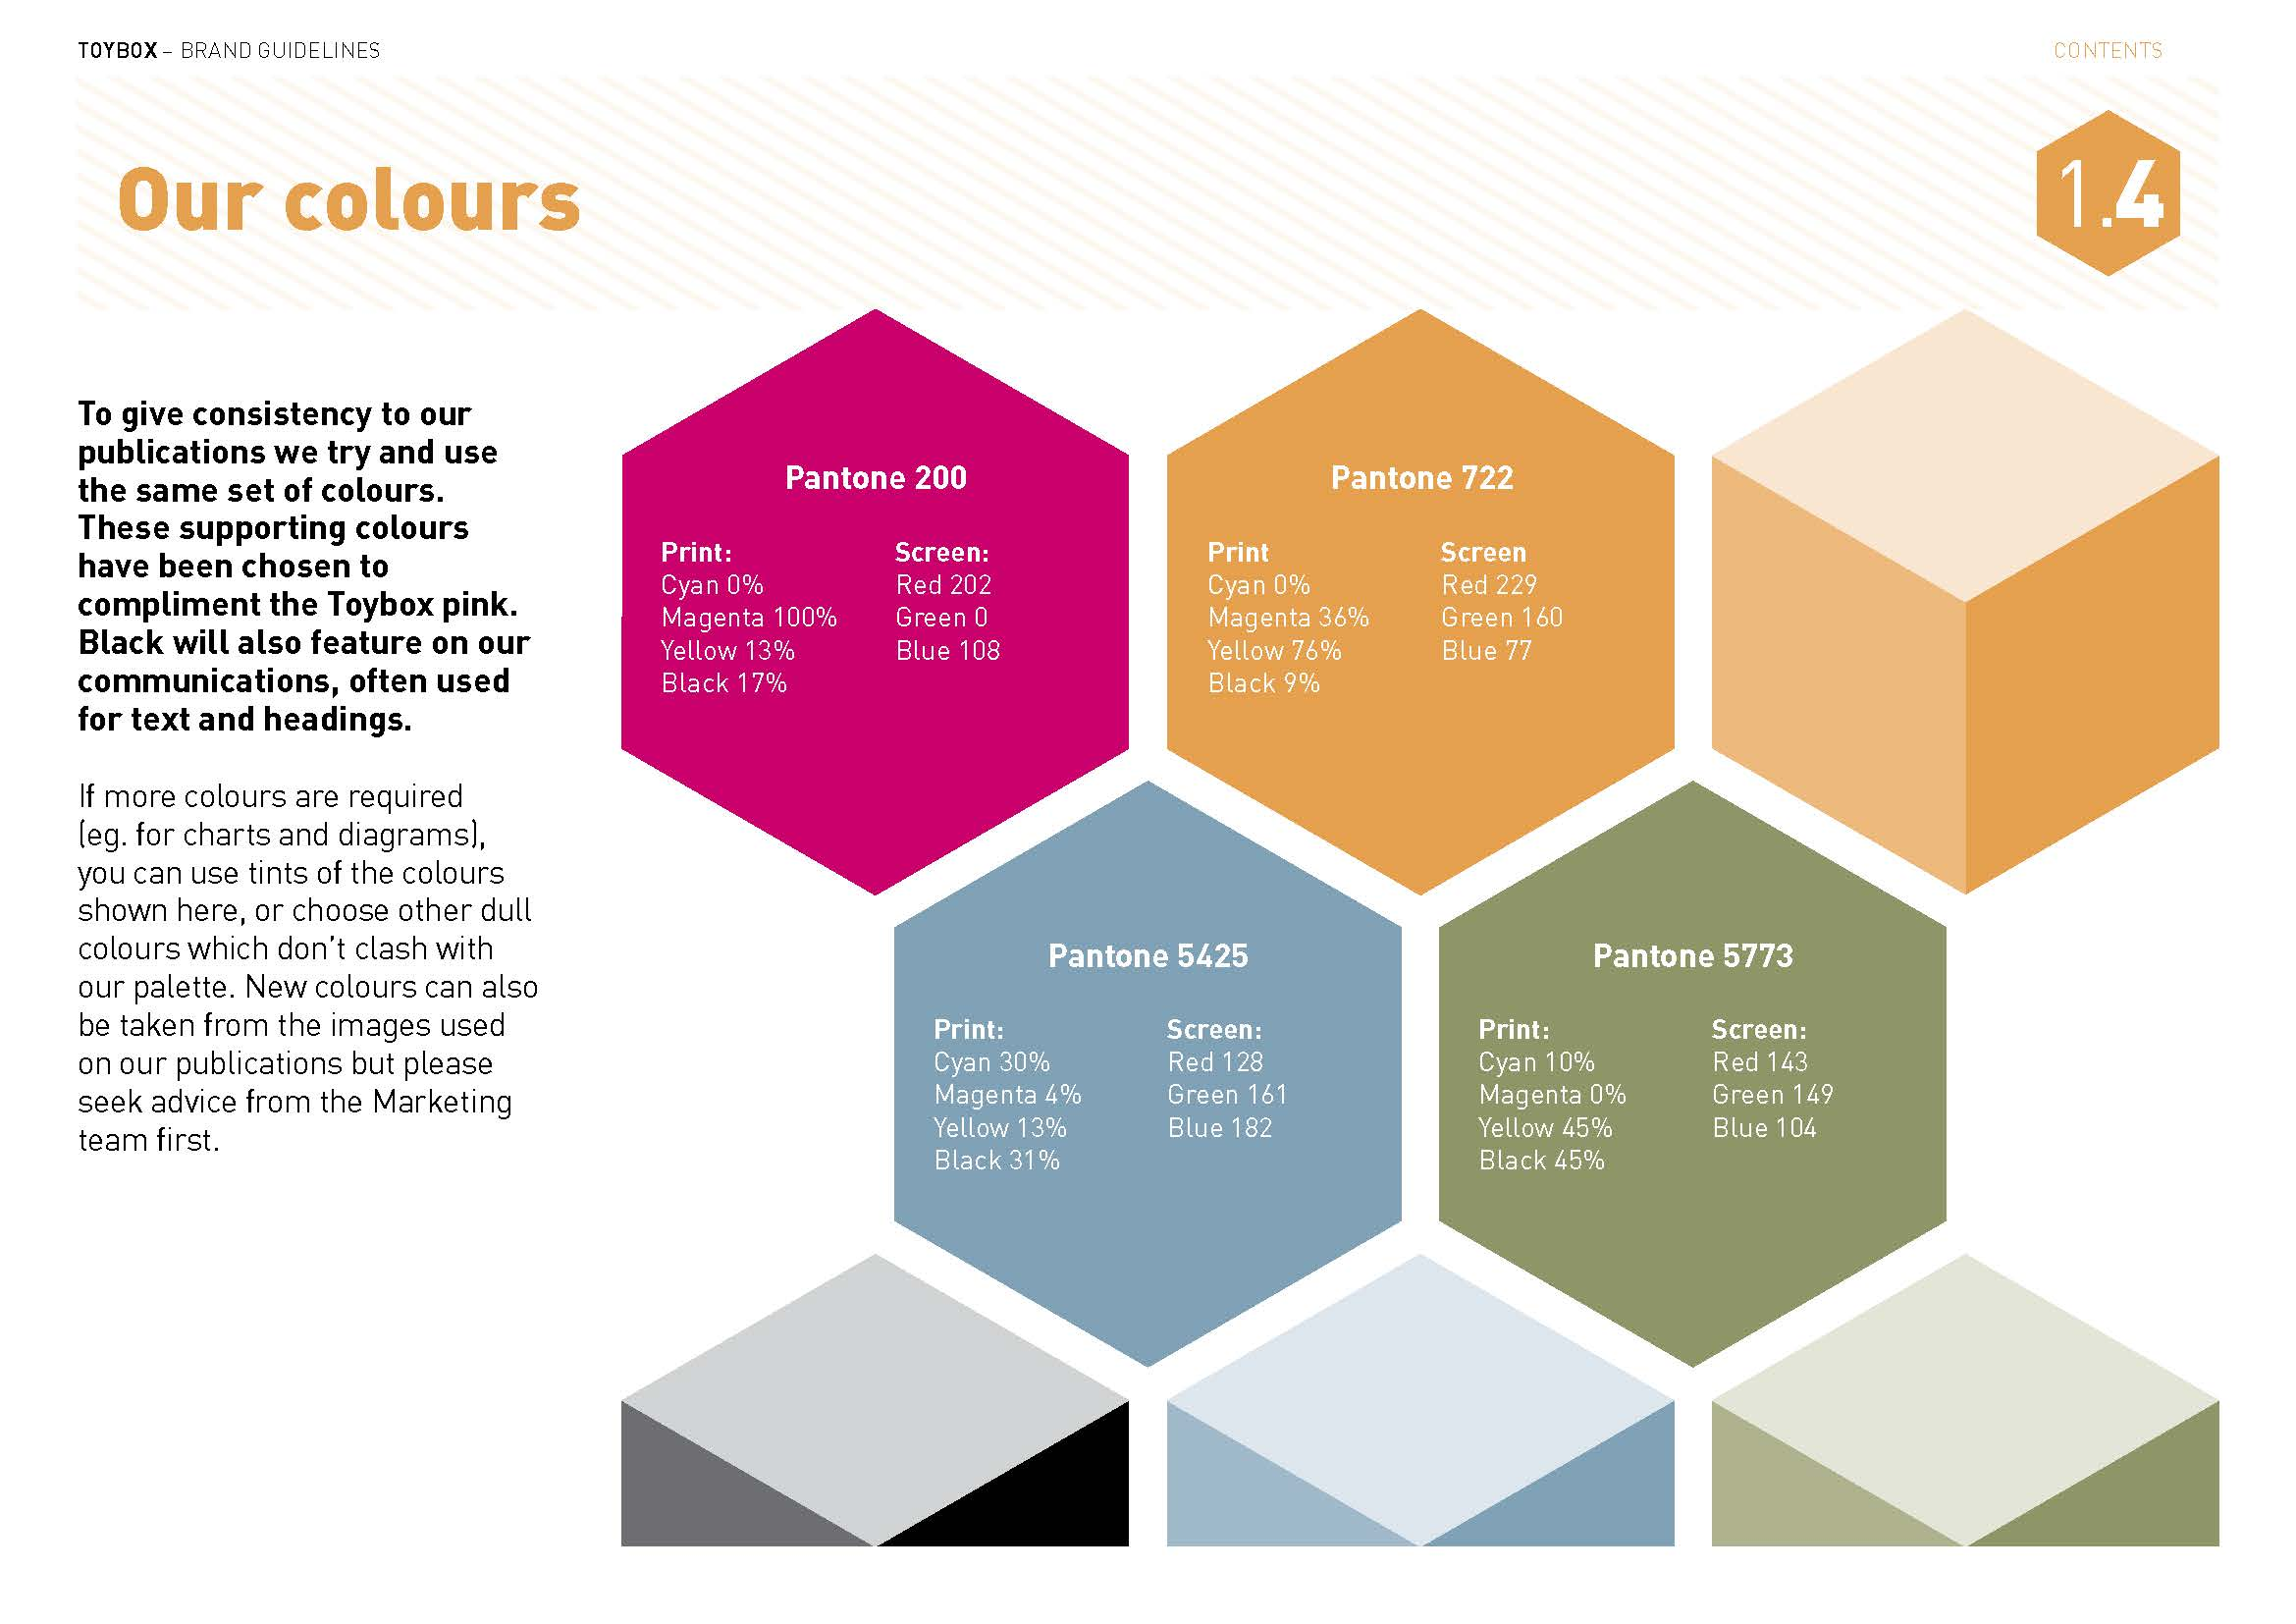 Toybox brand styleguide page - Our colours